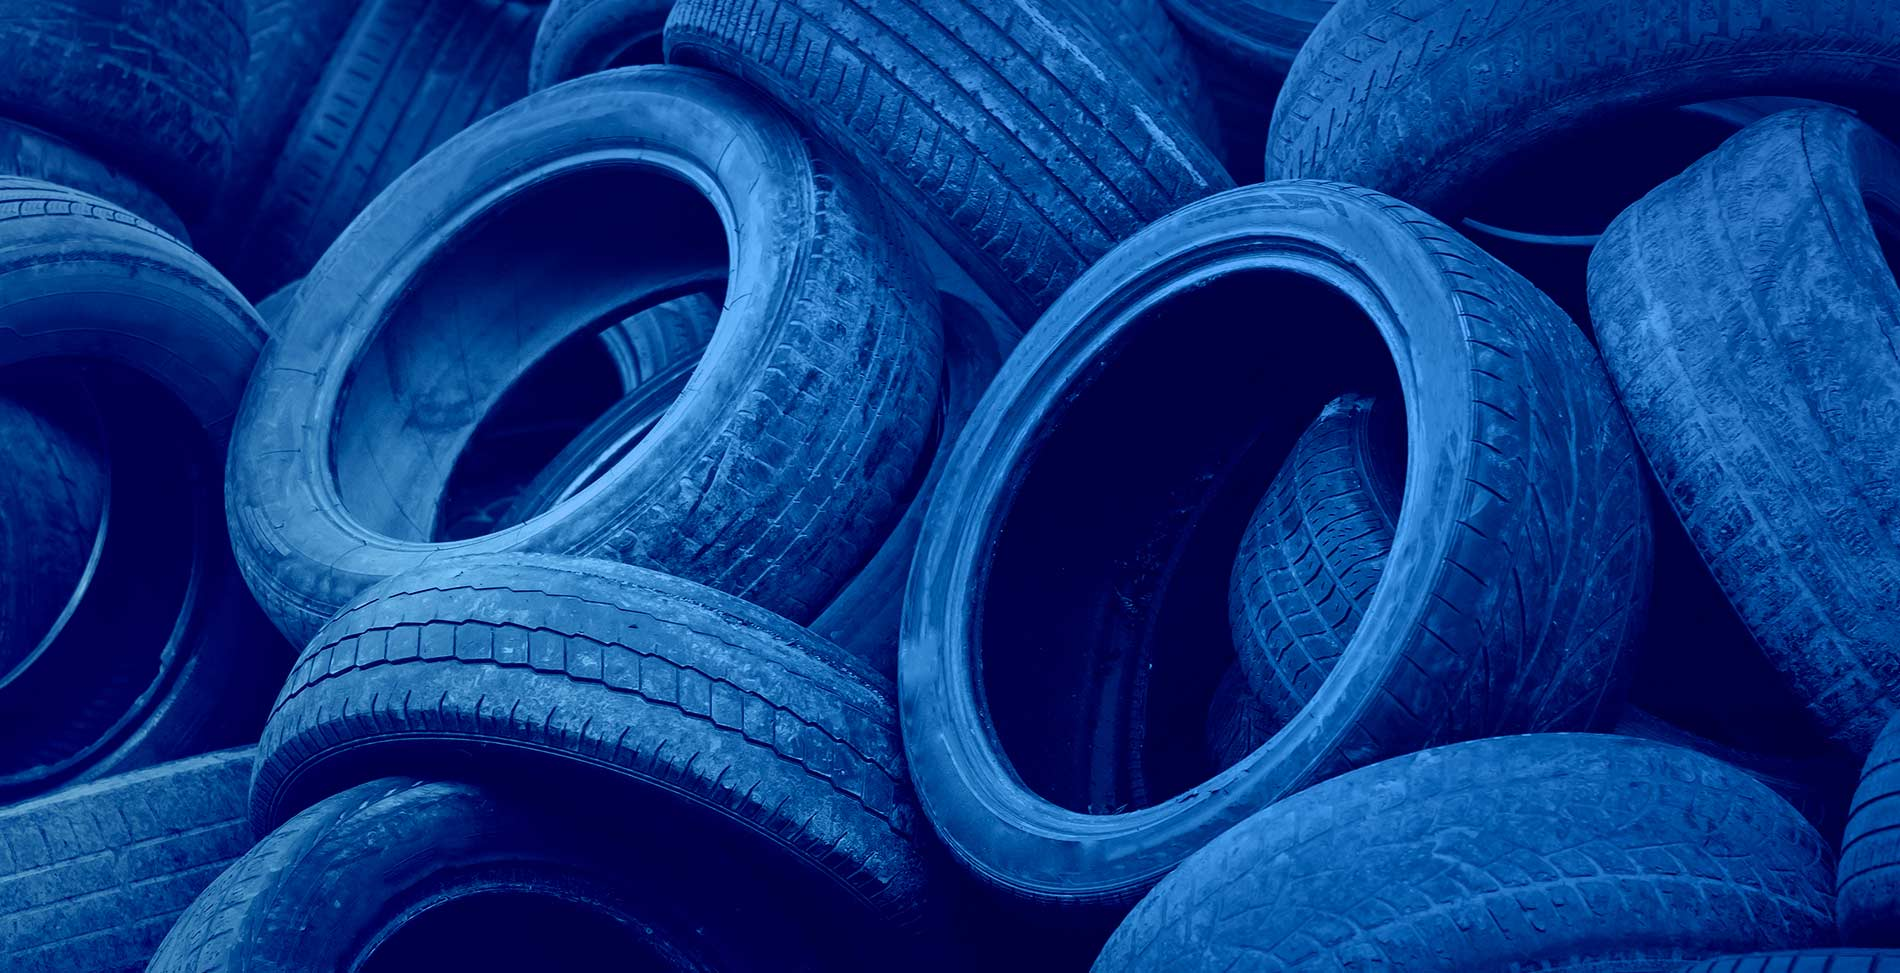 tirerecycling_post_blue